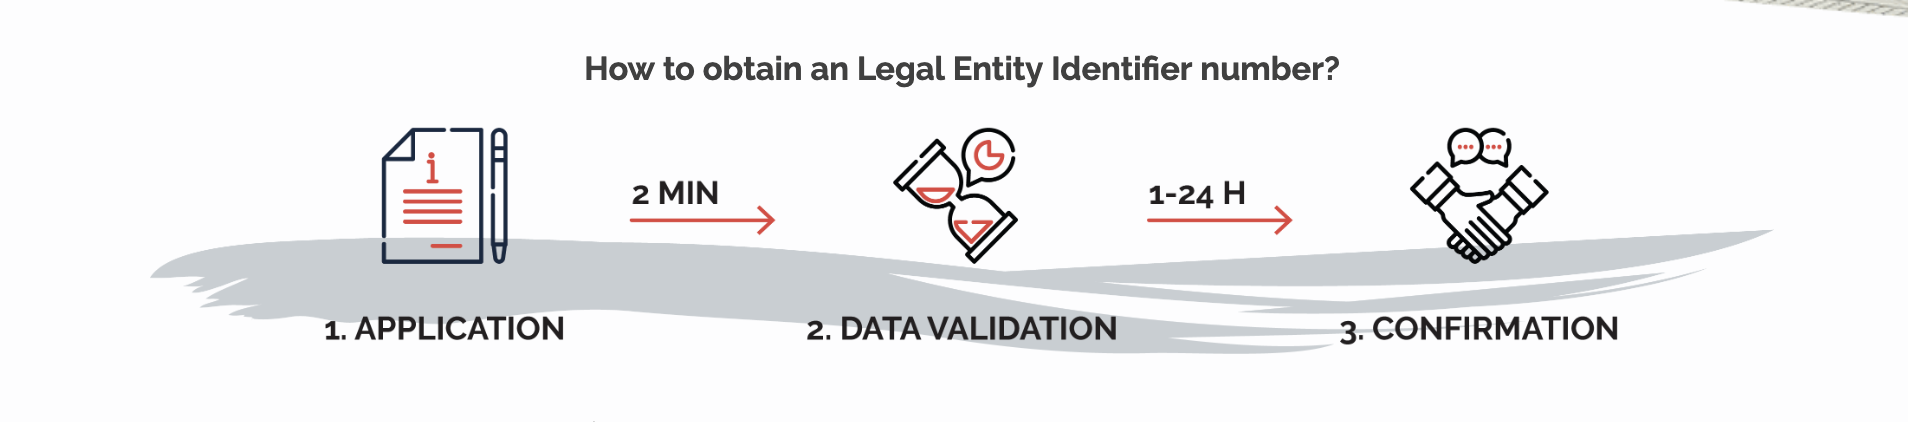 How to obtain an Legal Entity Identifier number?